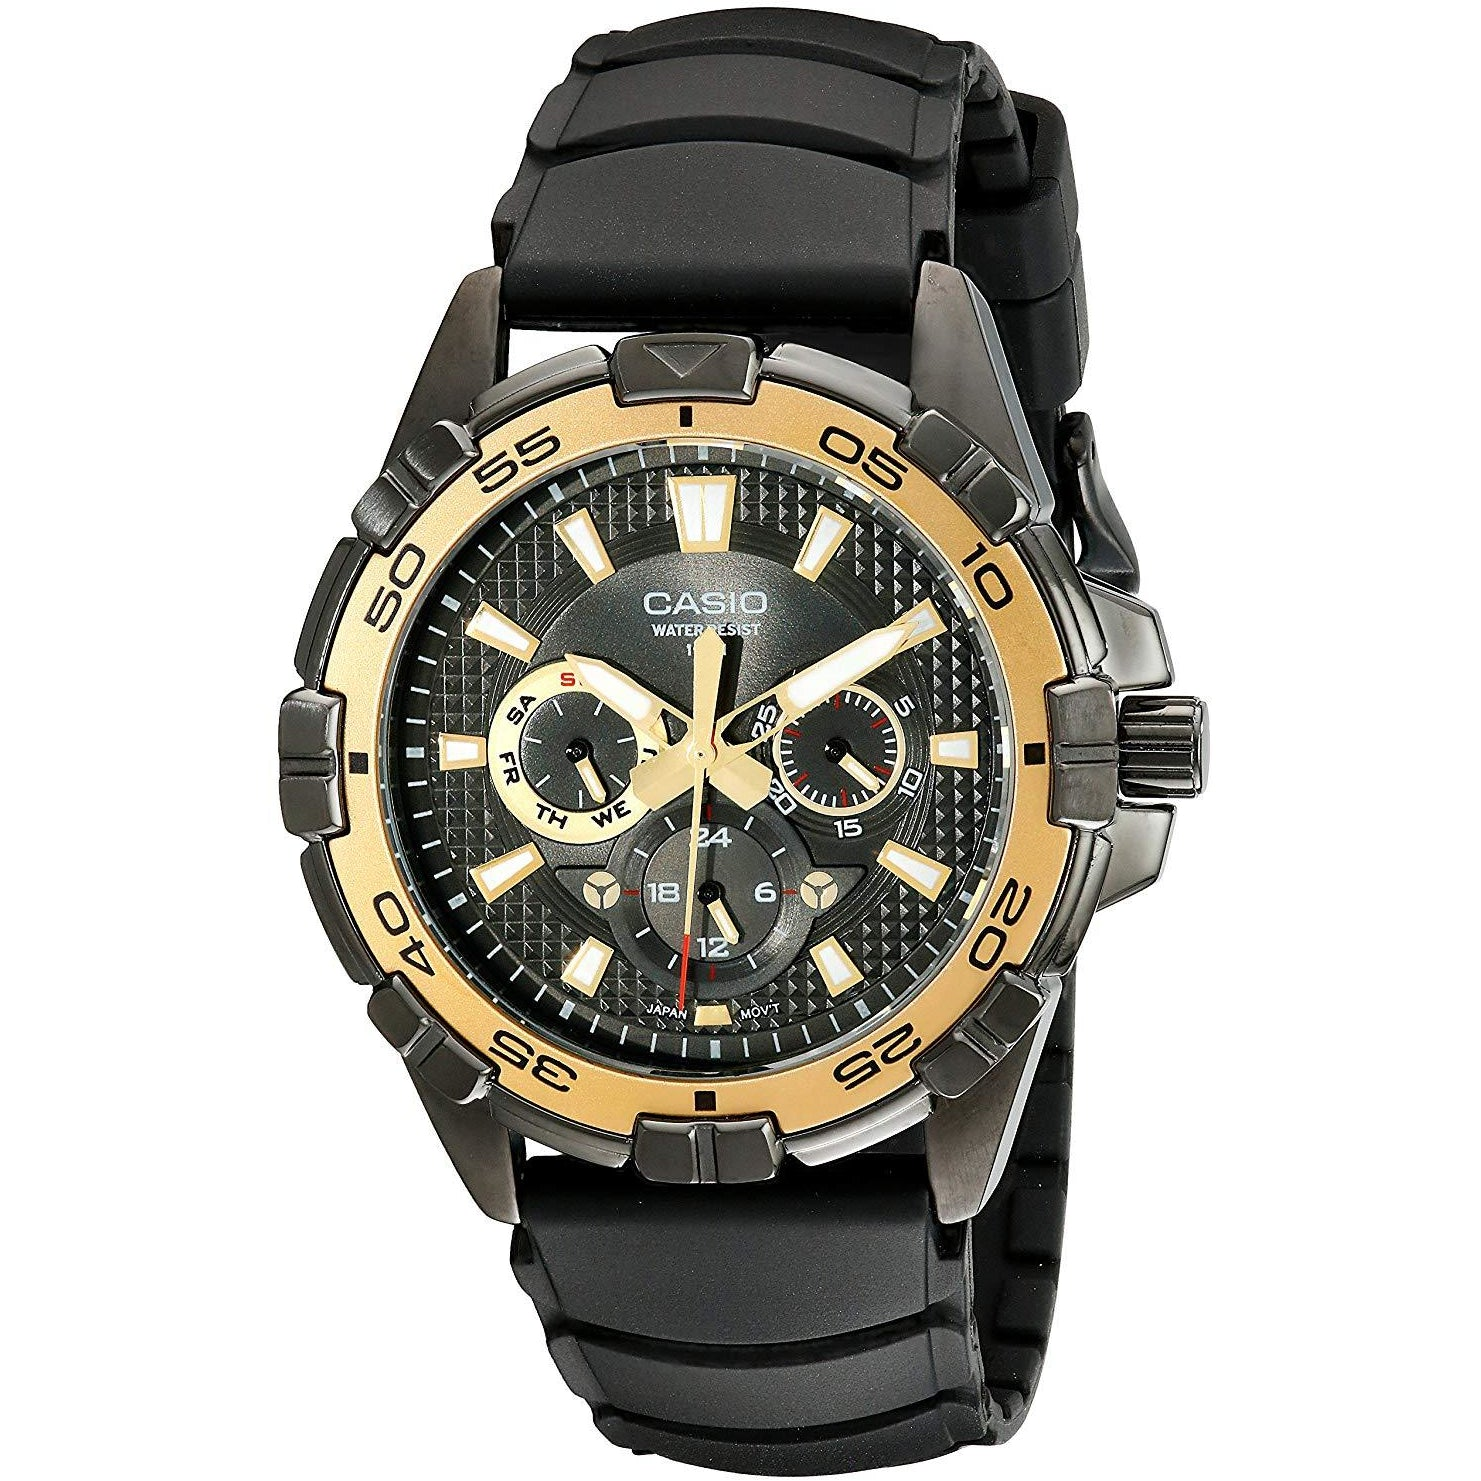 Casio Men's MTD1069B-1A1 Round Analog Black and Gold Dial and Black Resin Strap Watch